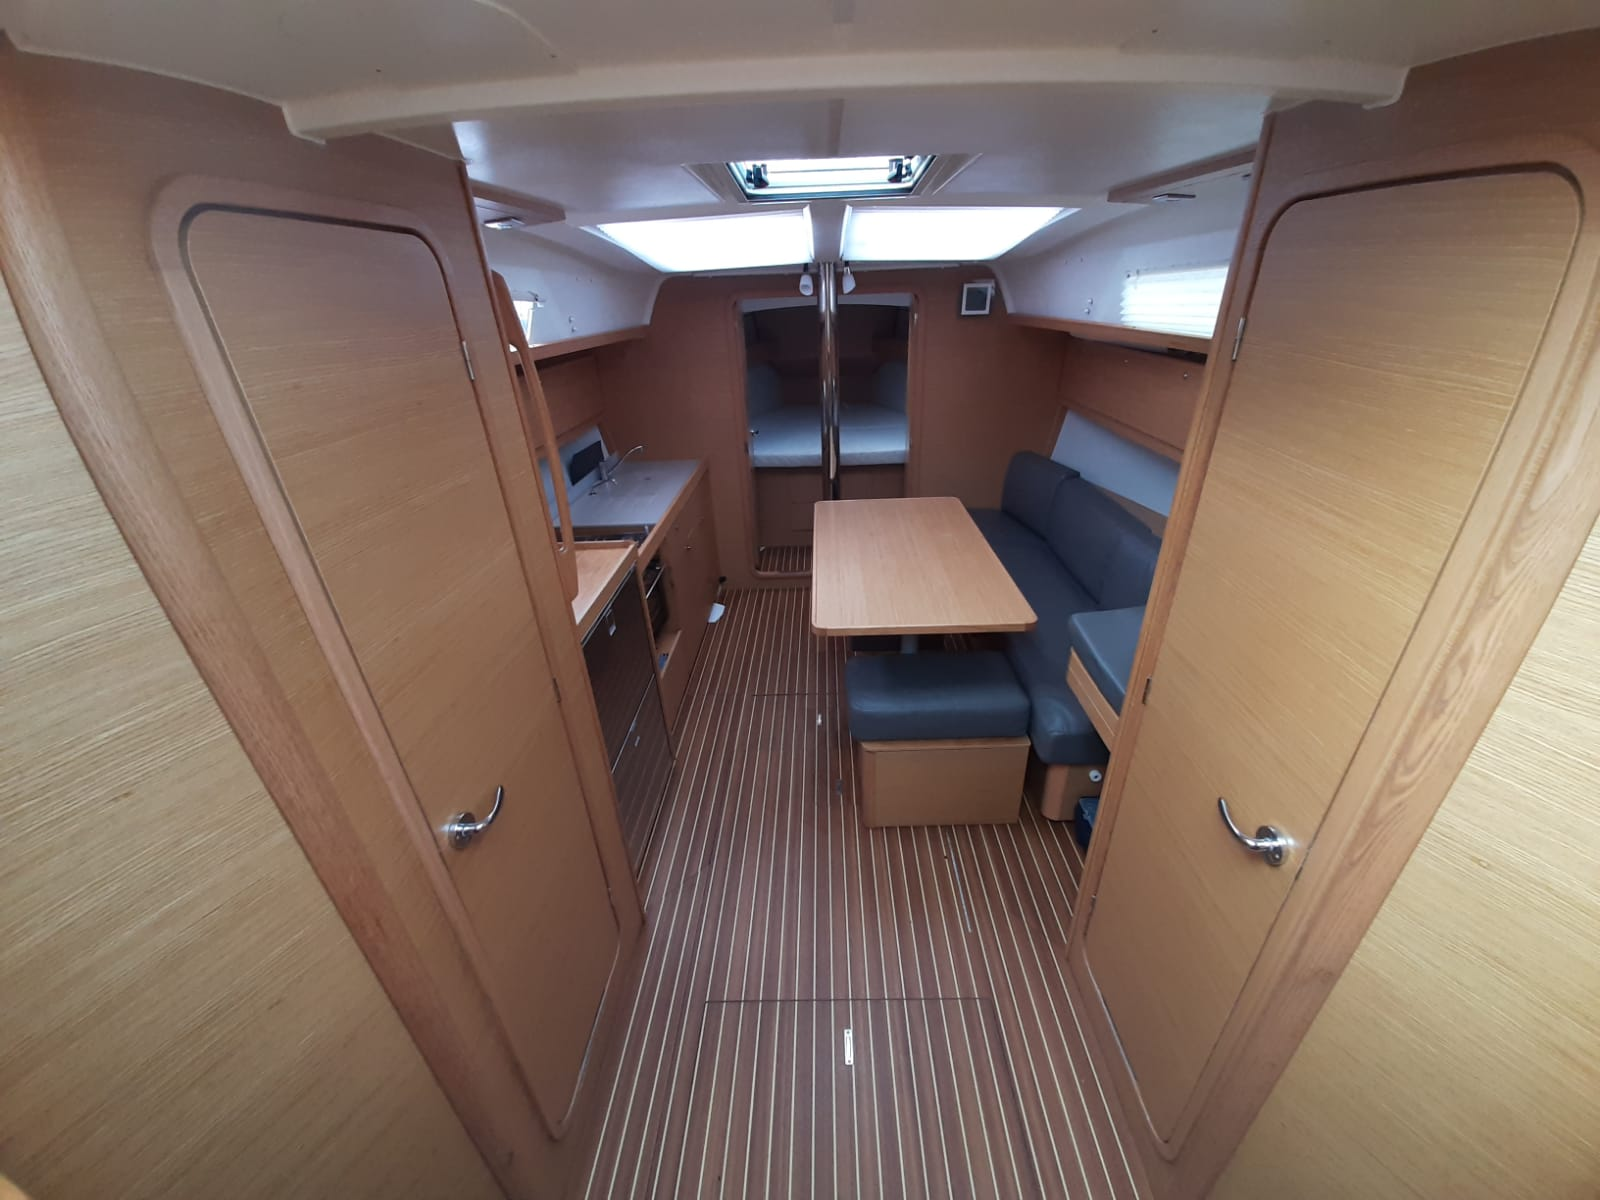 Dufour 382 Grand Large Shira 2018 (Shira) Interior image - 1